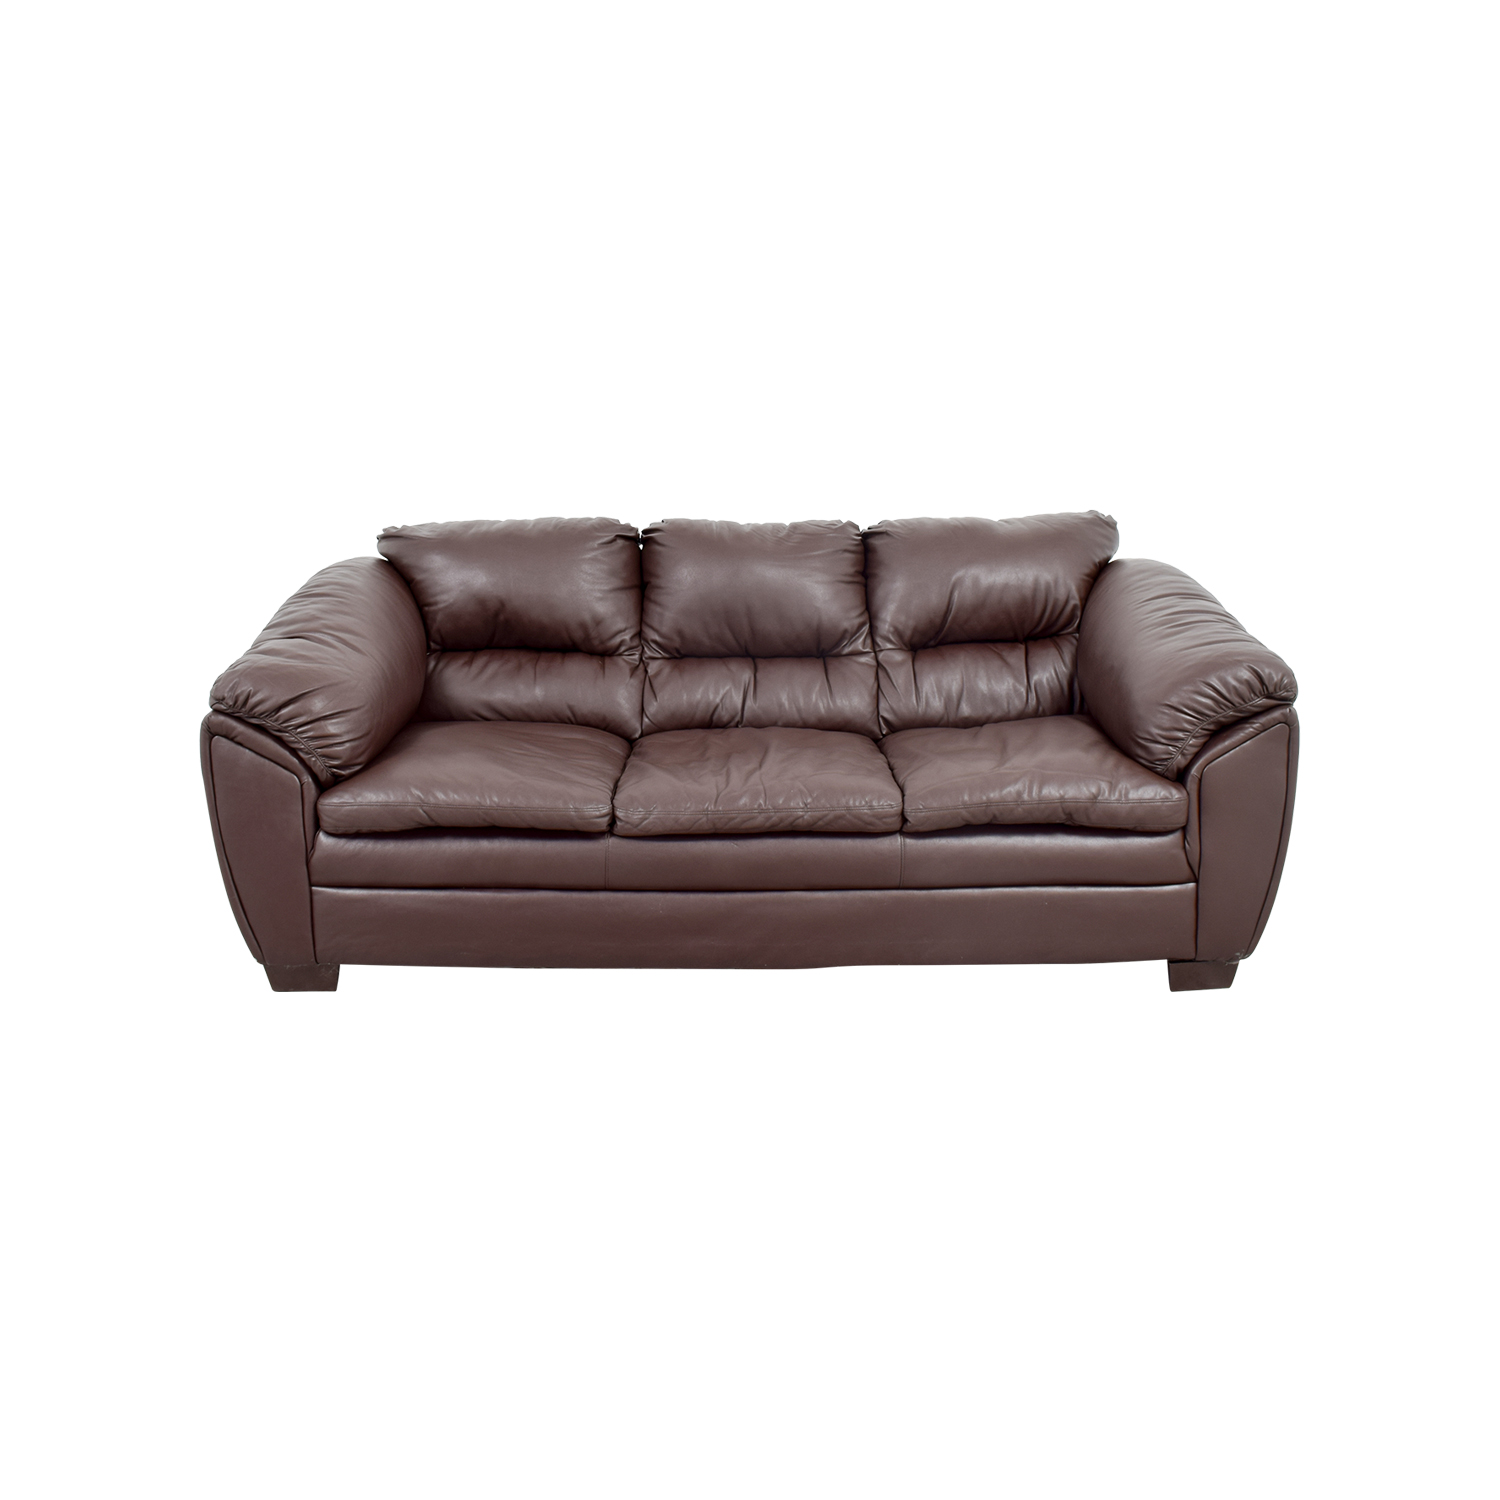 leather sofa outlet small room bed ideas furnishare buy and sell used furniture